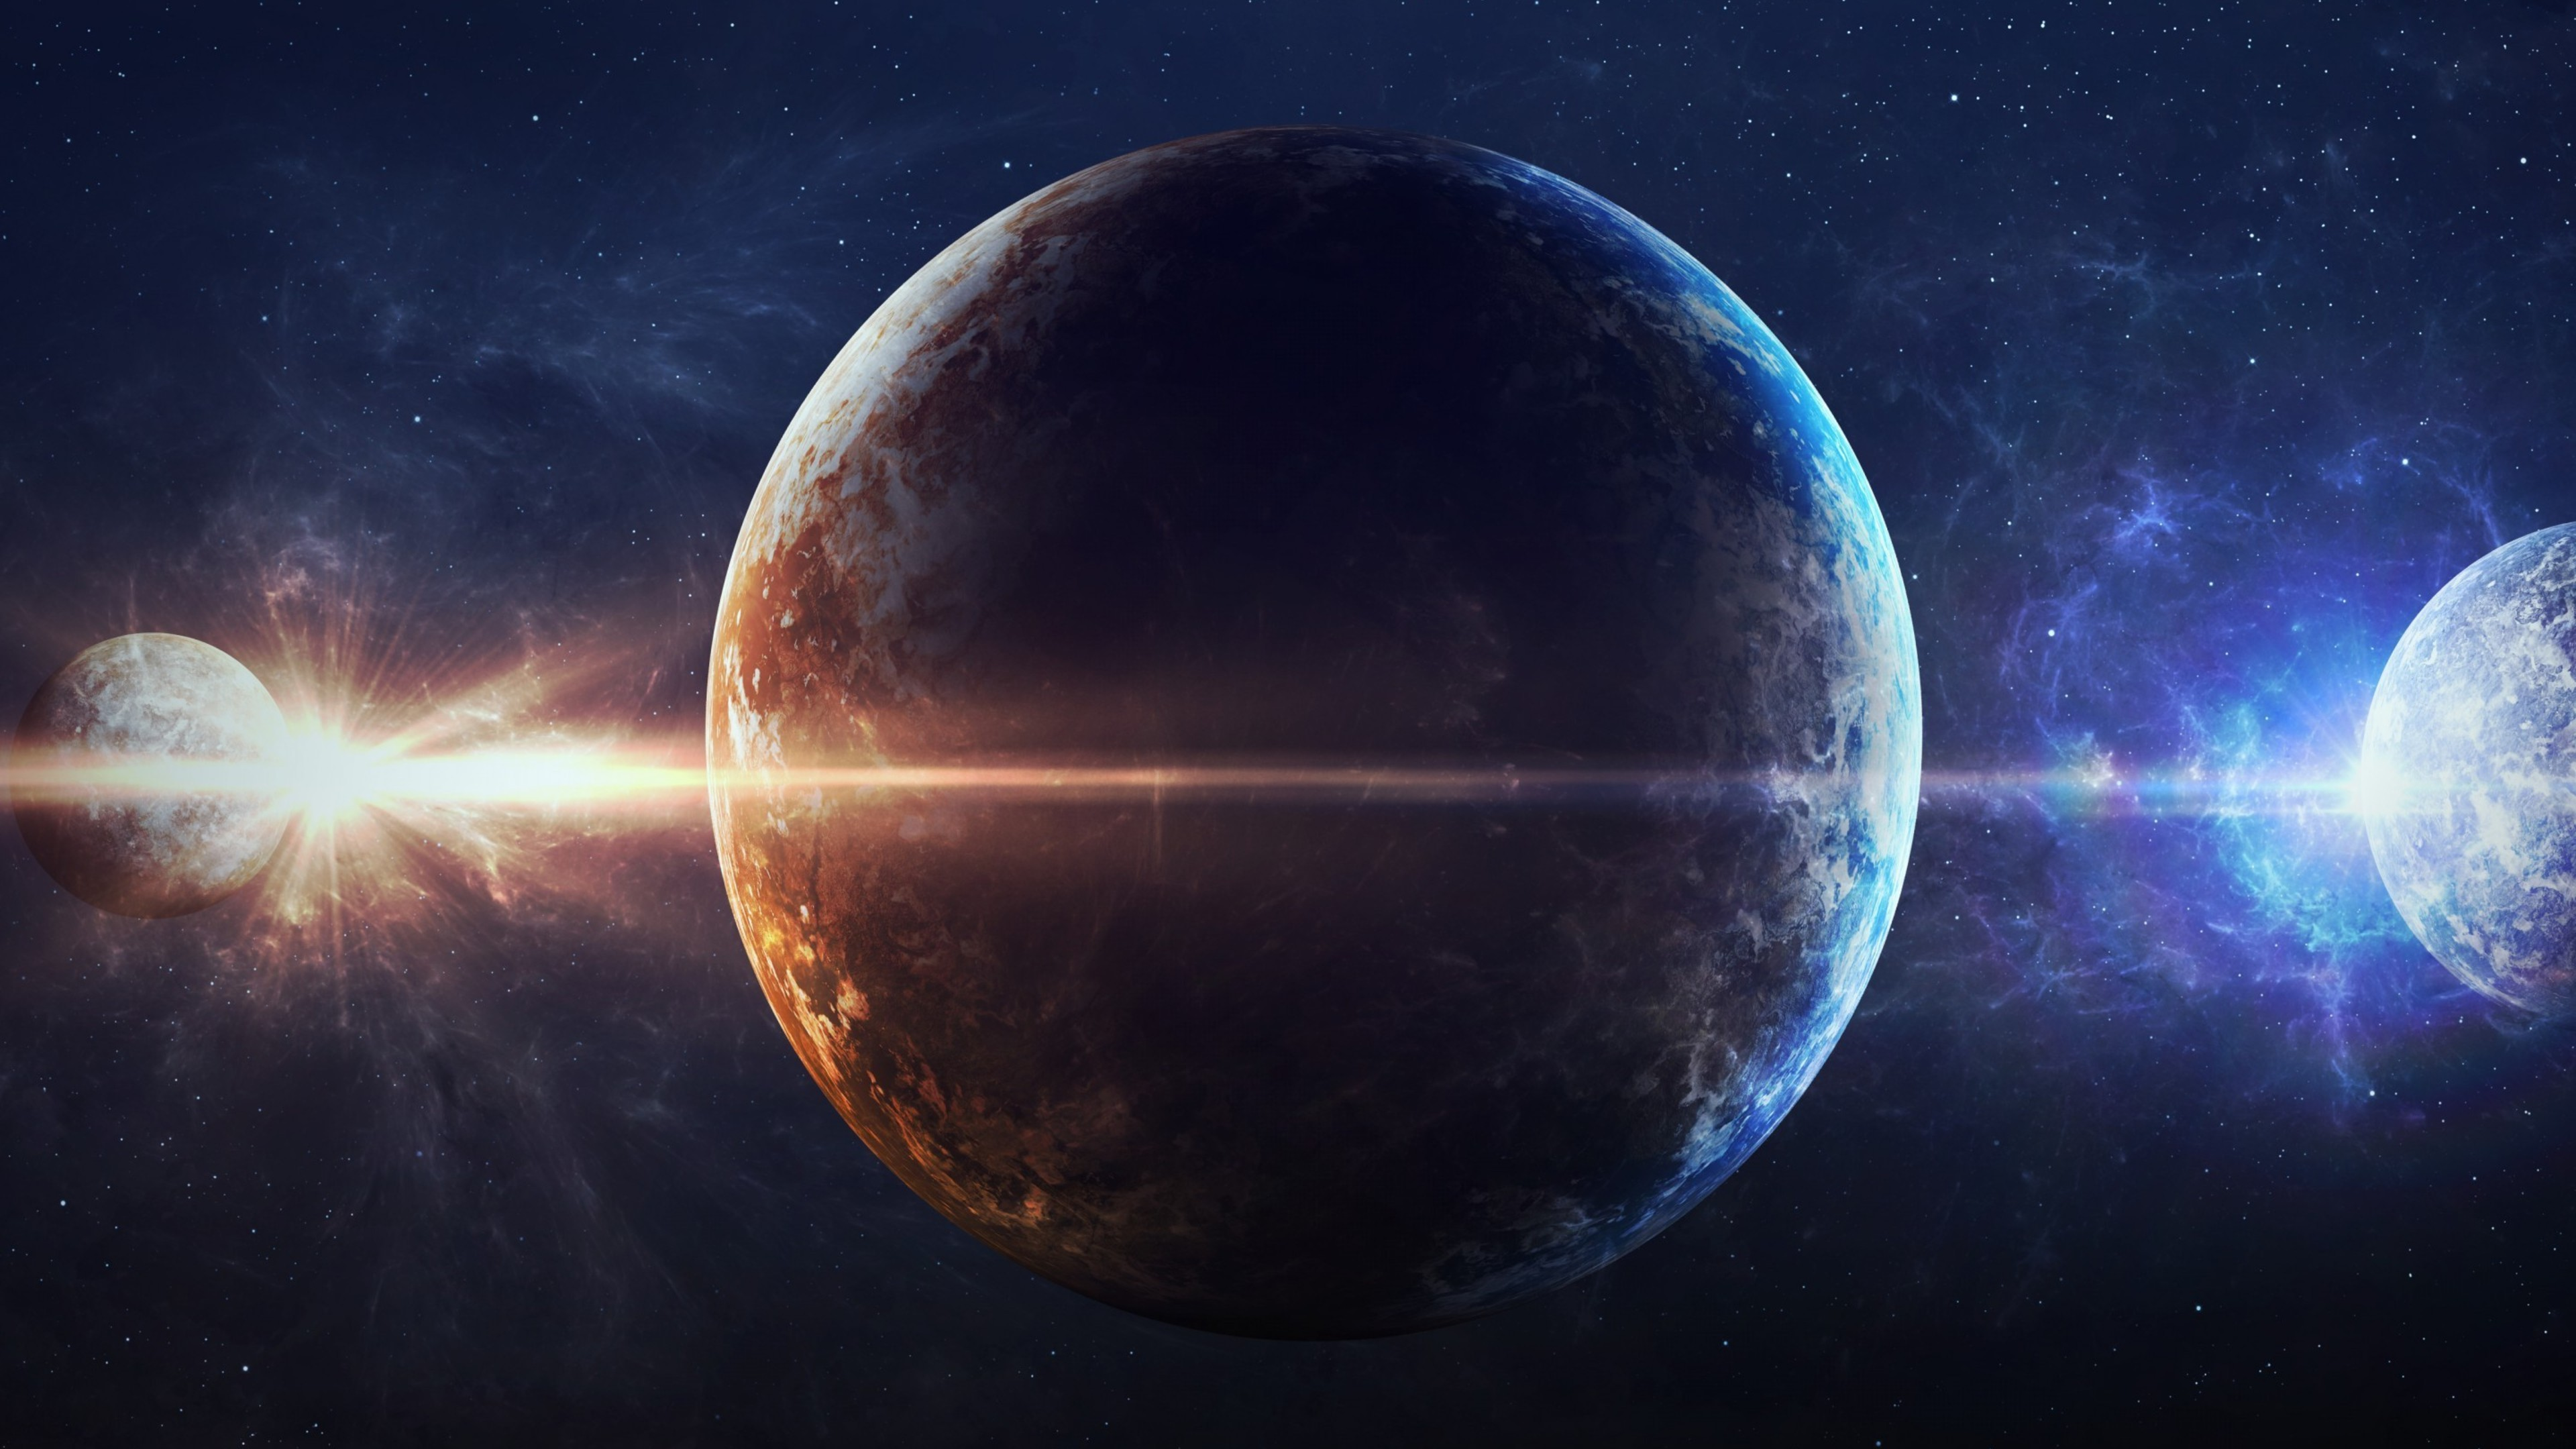 Planets HD Digital Universe 4k Wallpapers Images Backgrounds